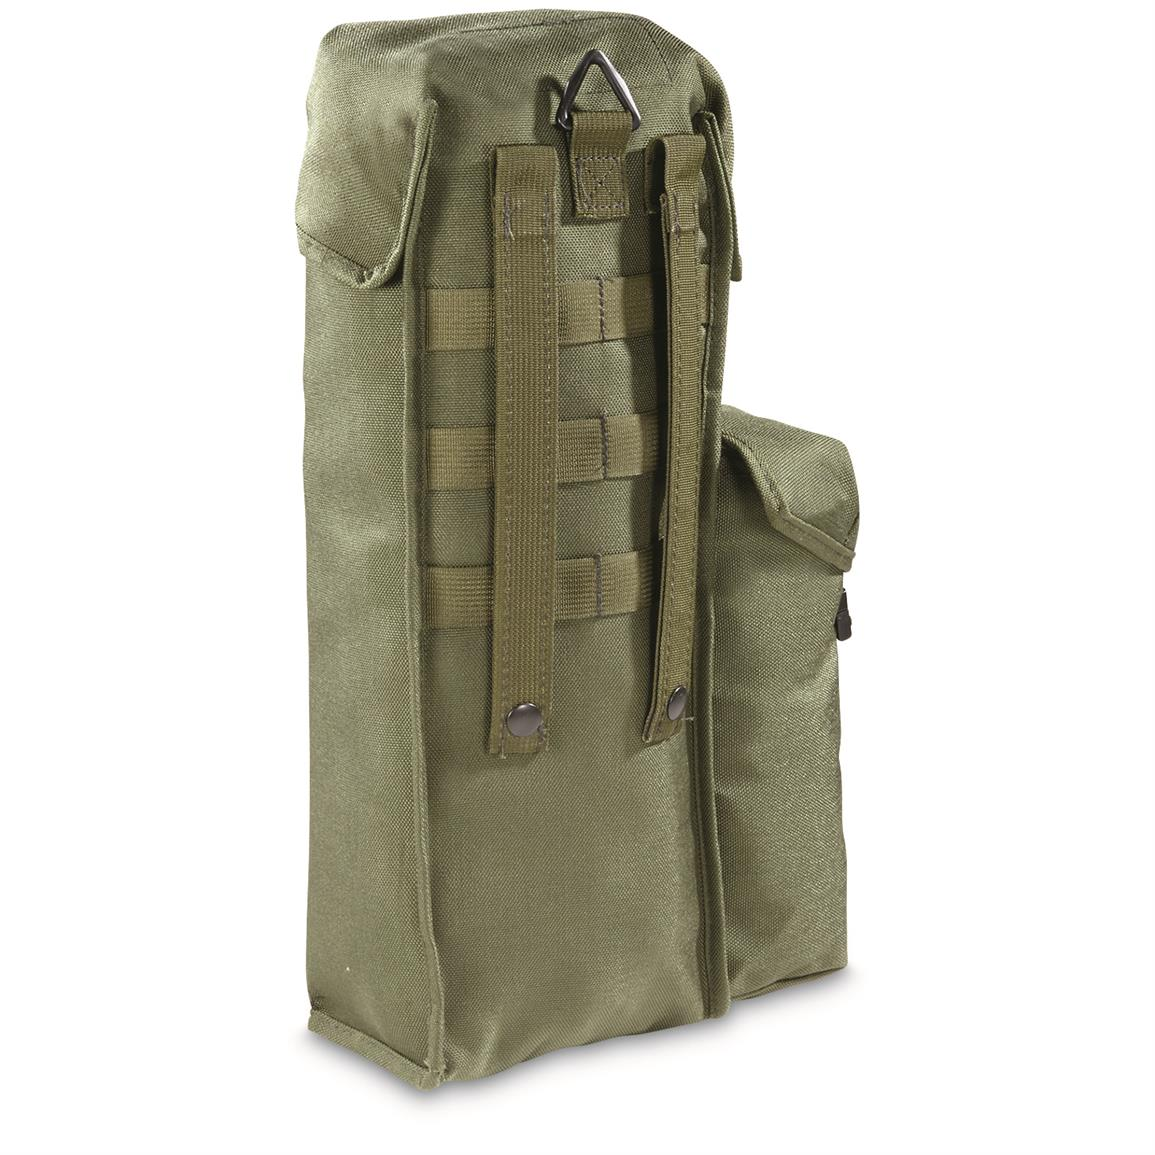 "16"" x 5.5"" x 3.5"" with molle straps and belt hook"